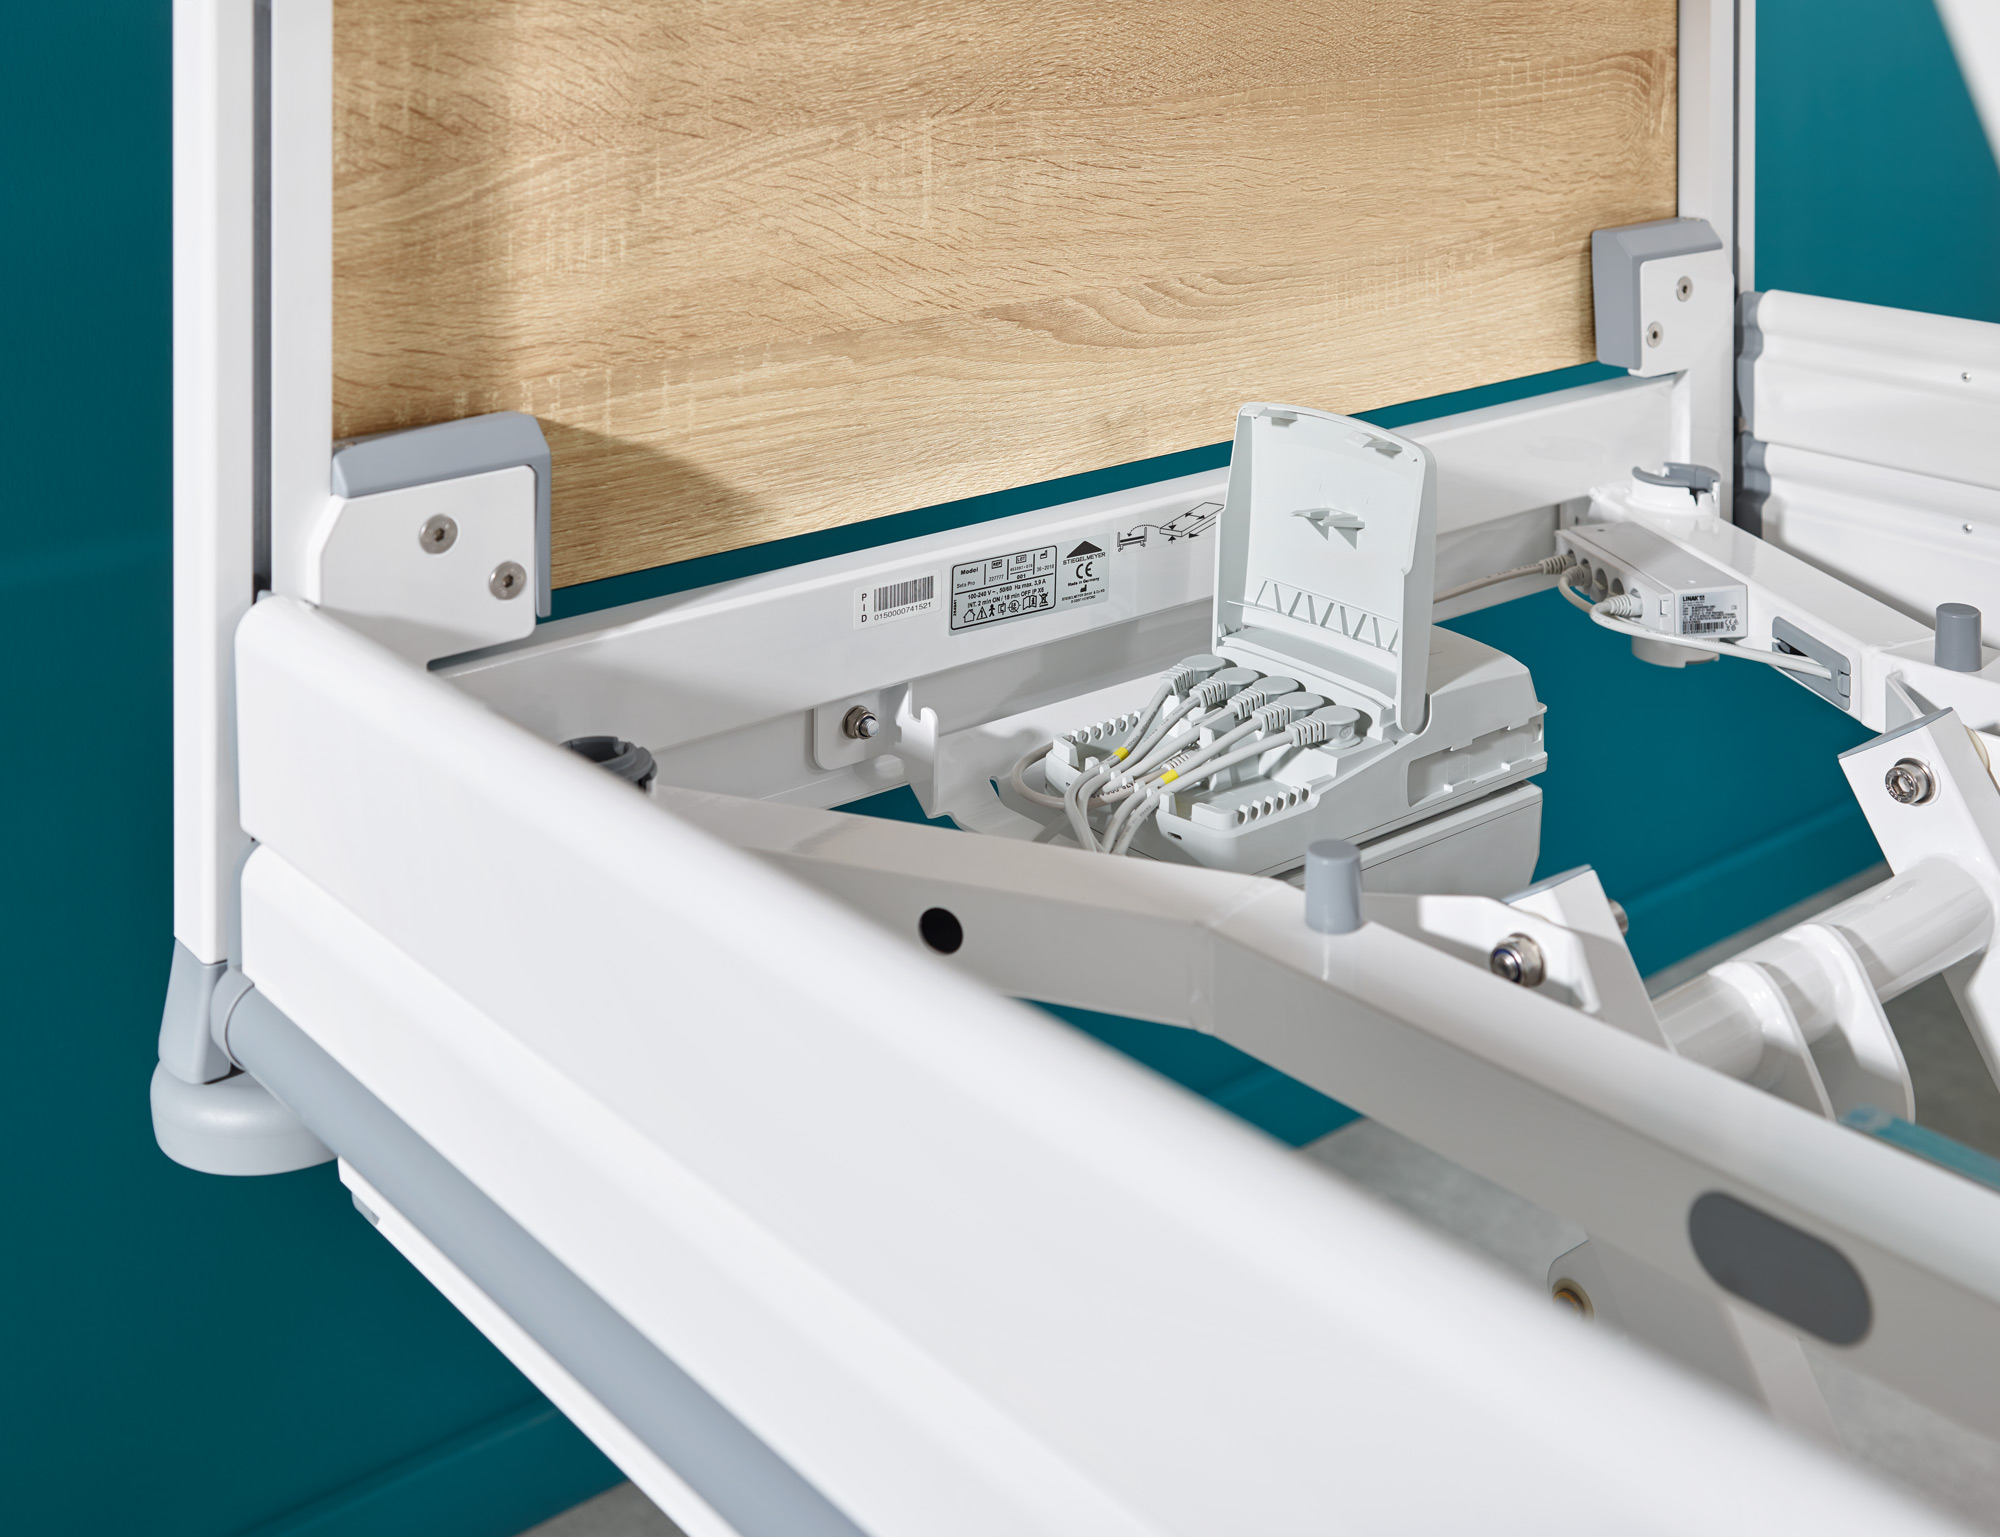 The easily accessible control of the Seta pro hospital bed